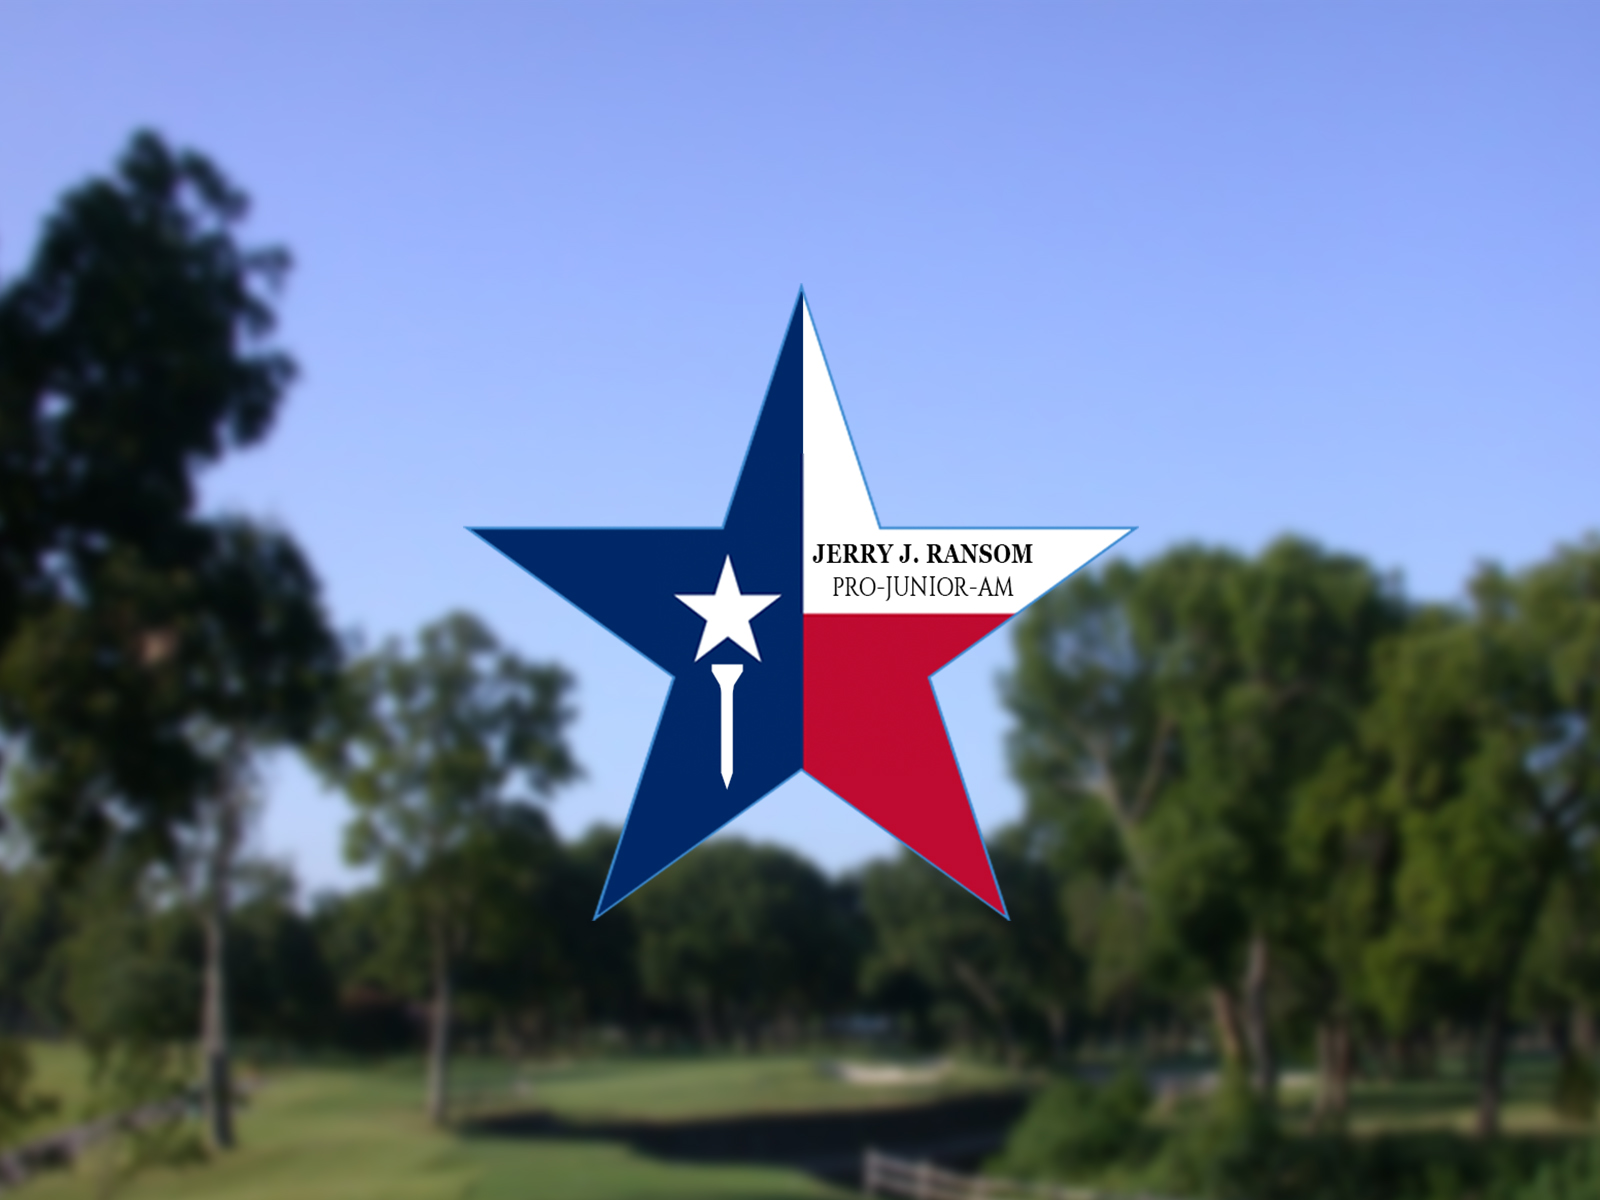 Jerry J. Ransom Pro-Junior-Am Created to Support NTPGA's Growth of the Game Initiatives